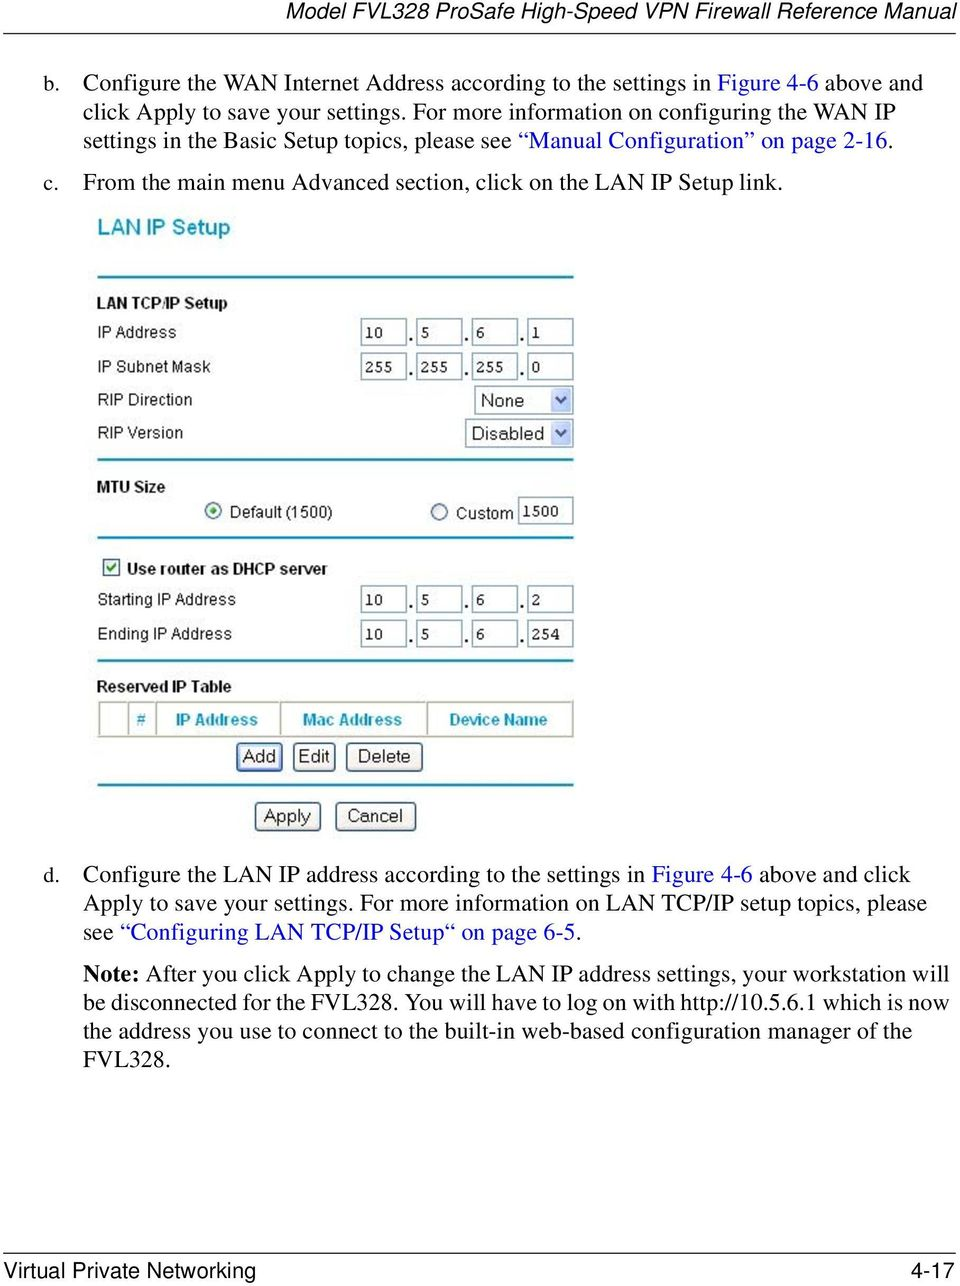 d. Configure the LAN IP address according to the settings in Figure 4-6 above and click Apply to save your settings.